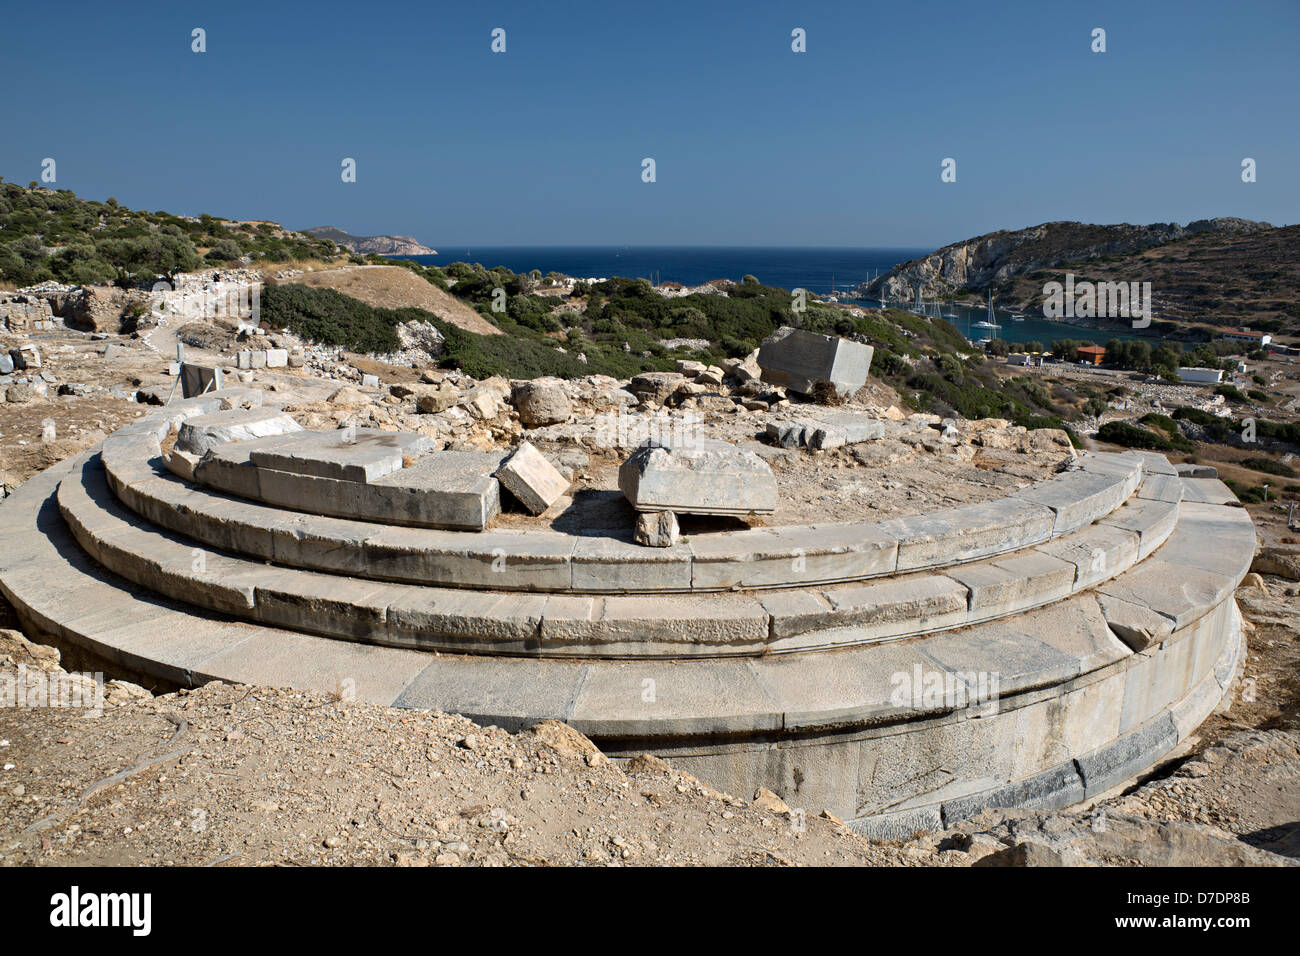 ancient aphrodite stockfotos ancient aphrodite bilder alamy. Black Bedroom Furniture Sets. Home Design Ideas